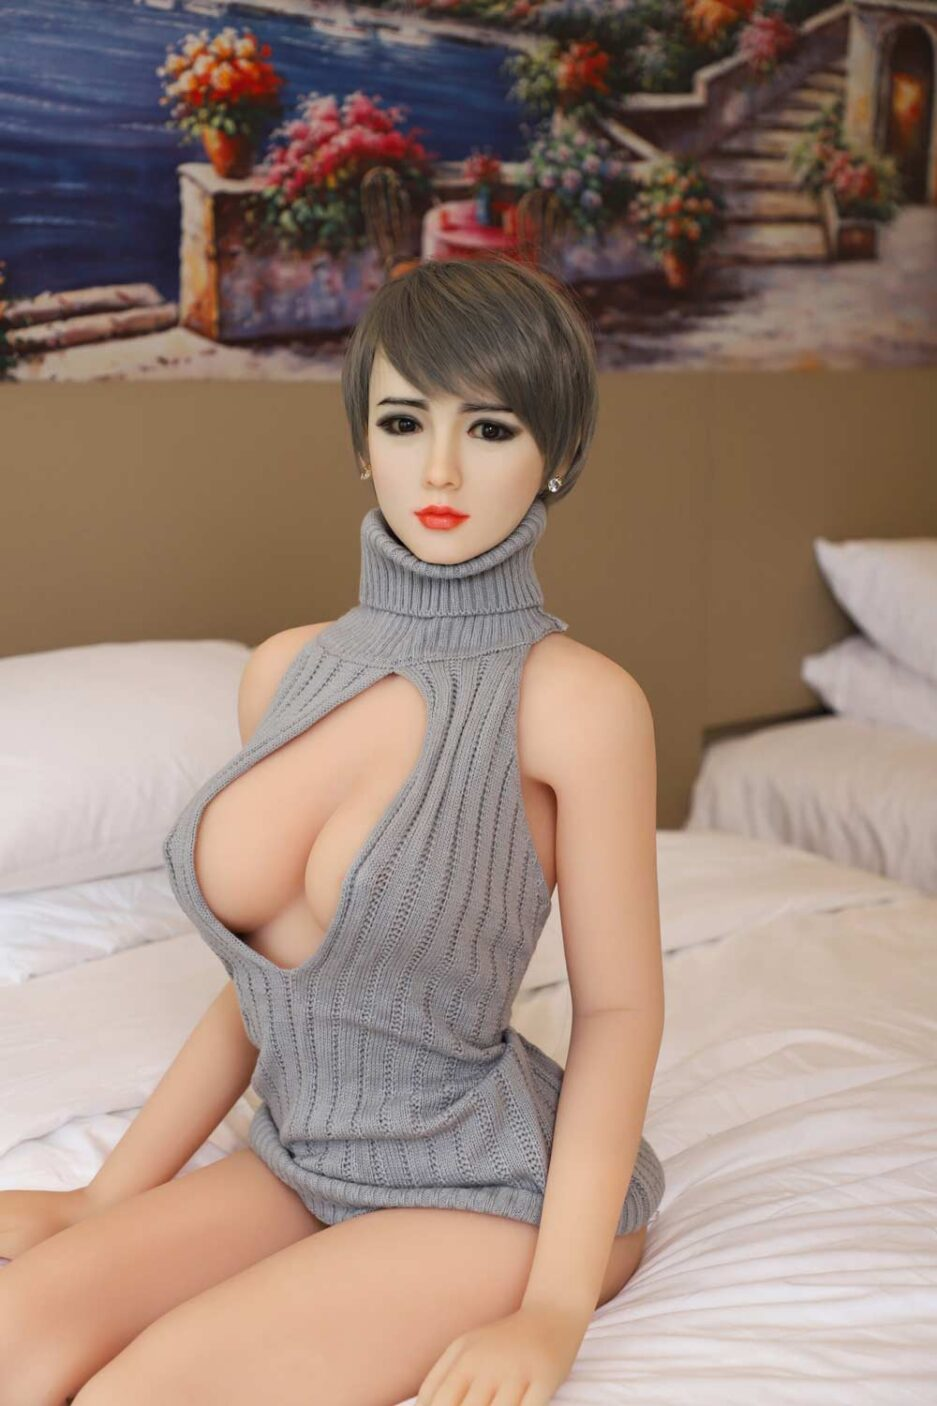 Silicone sex doll with hands on the bed